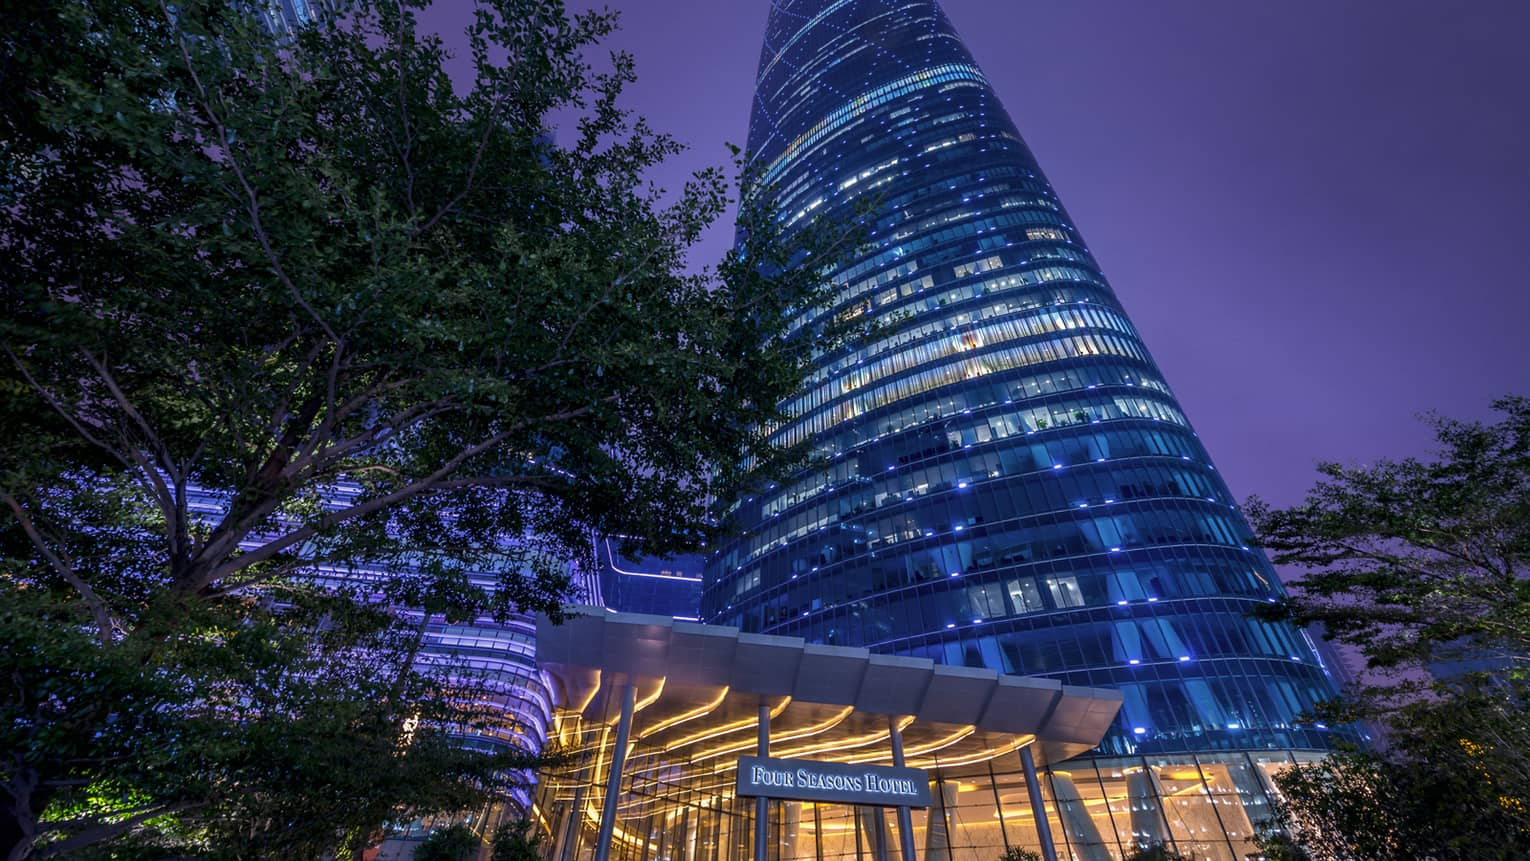 Four Seasons Hotel Guangzhou at night, high rise building with blue lights